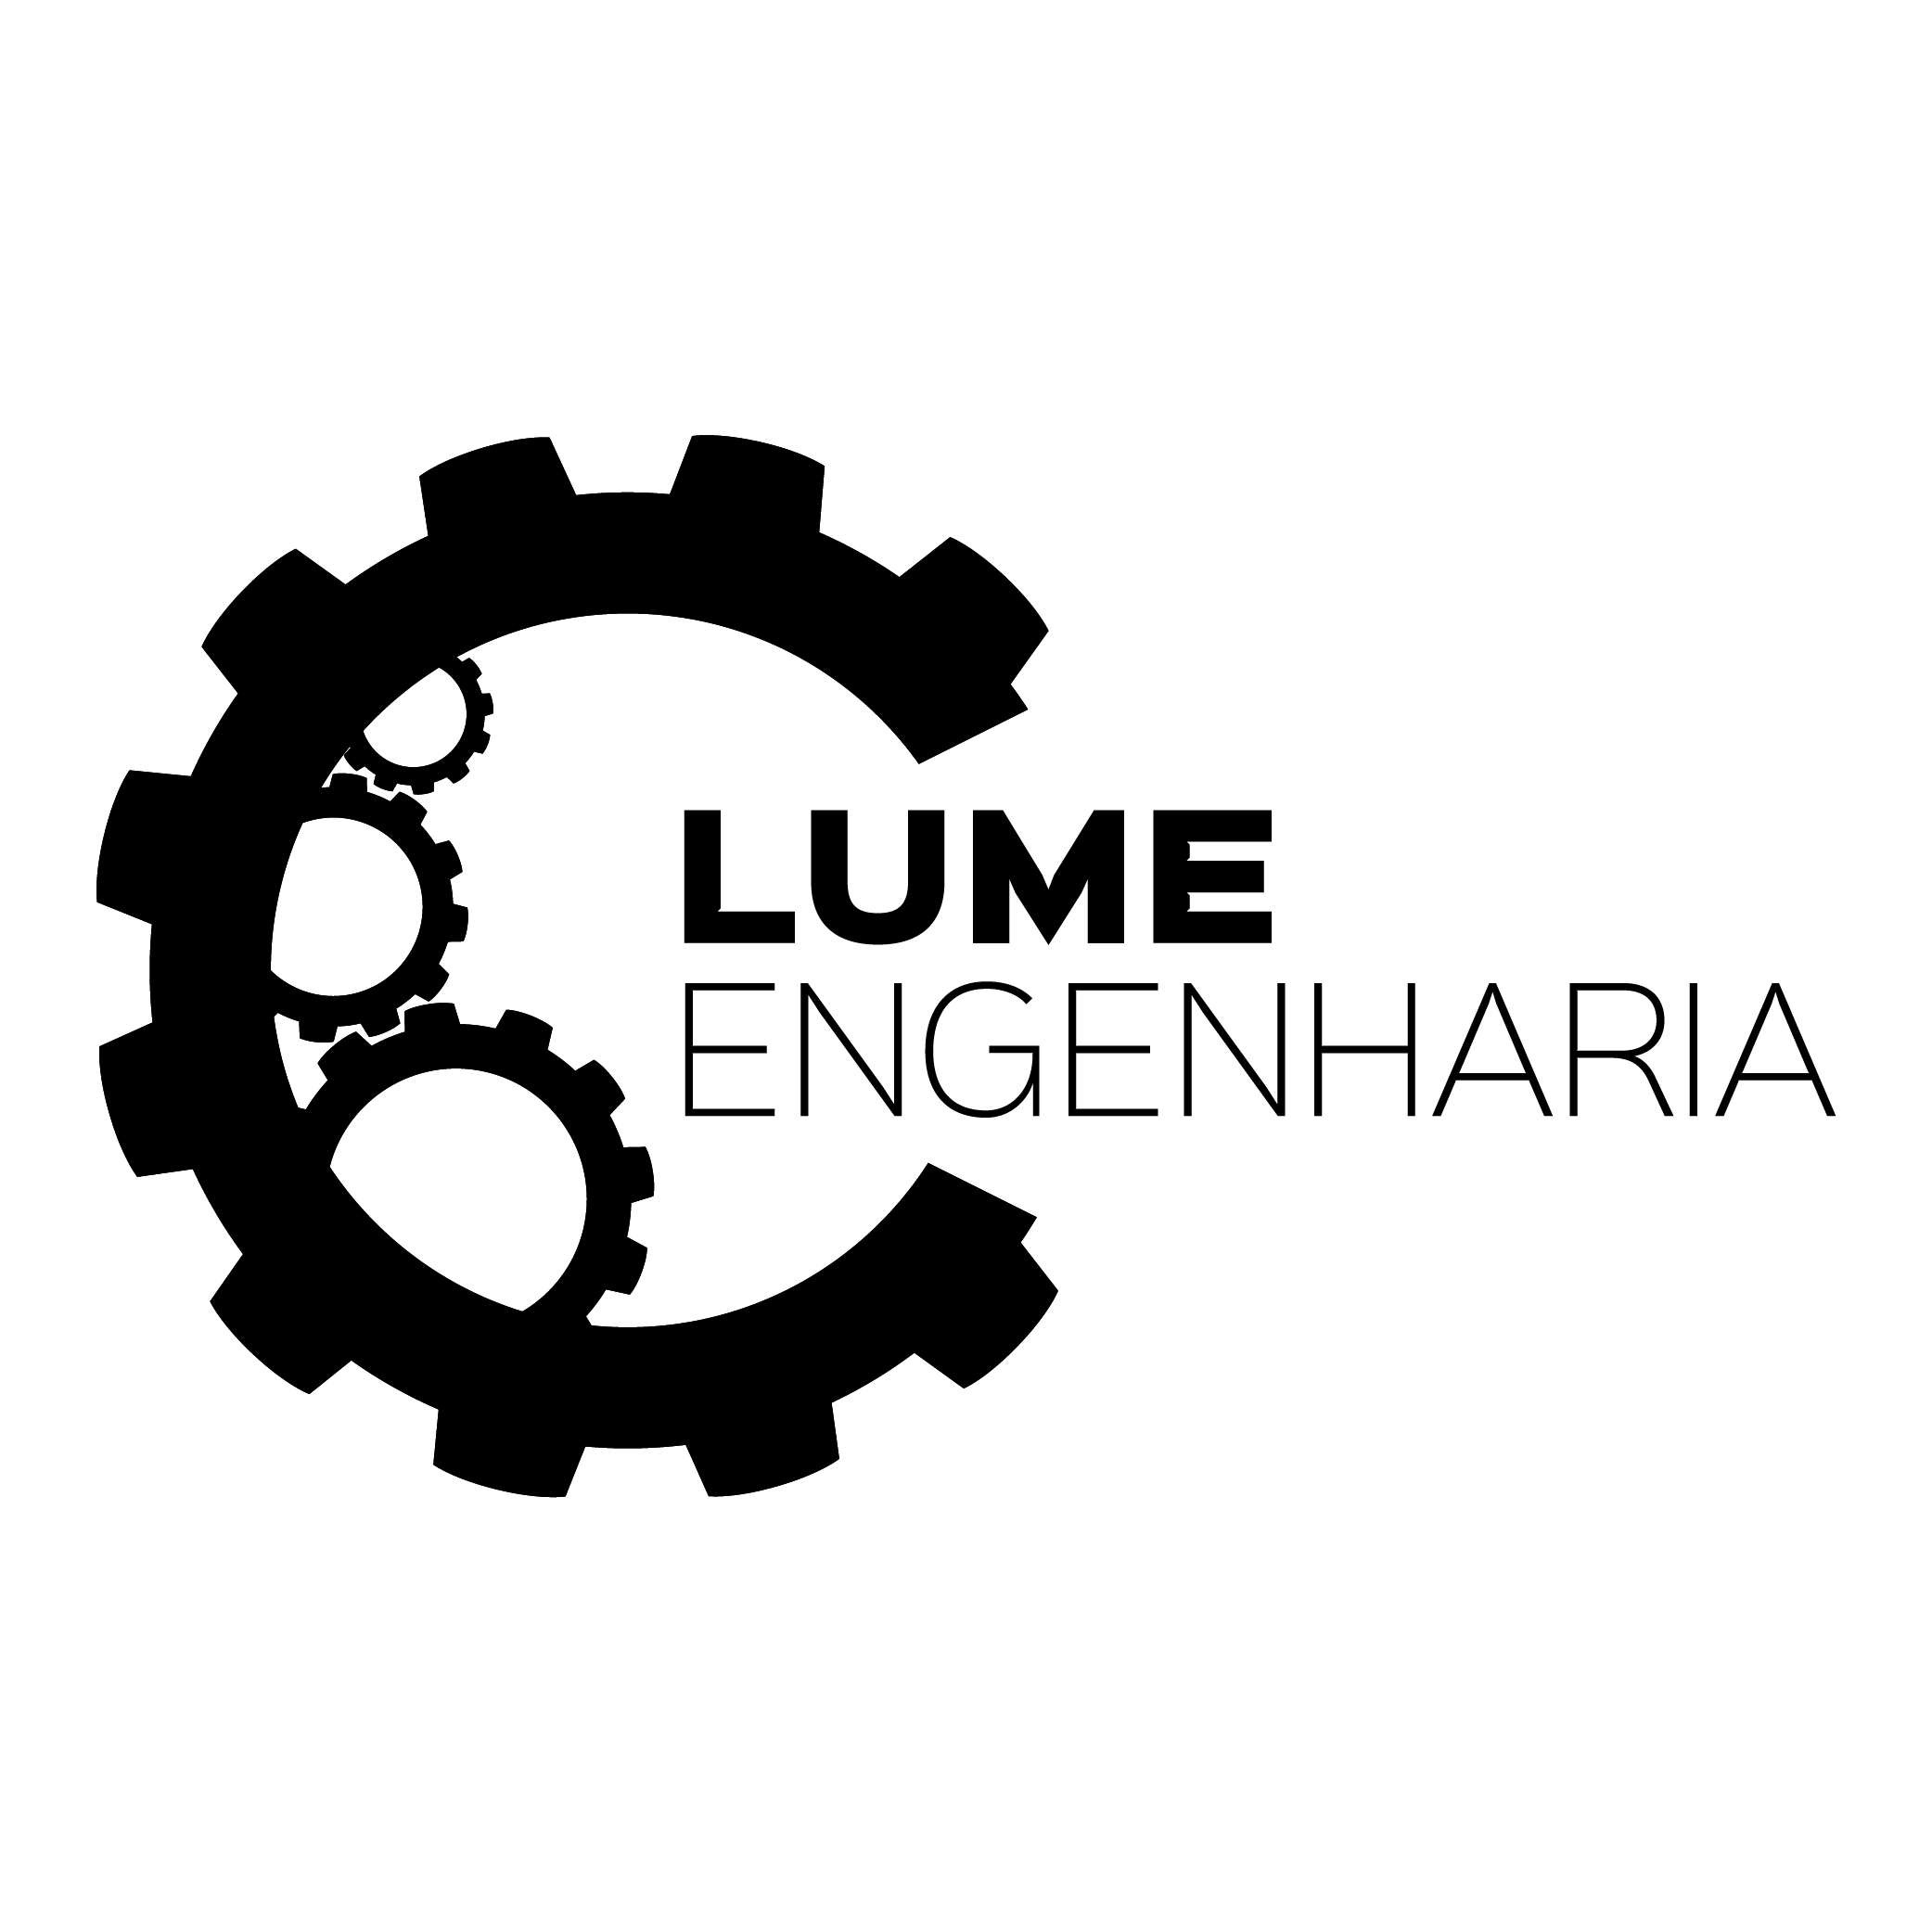 lume-01-01.png